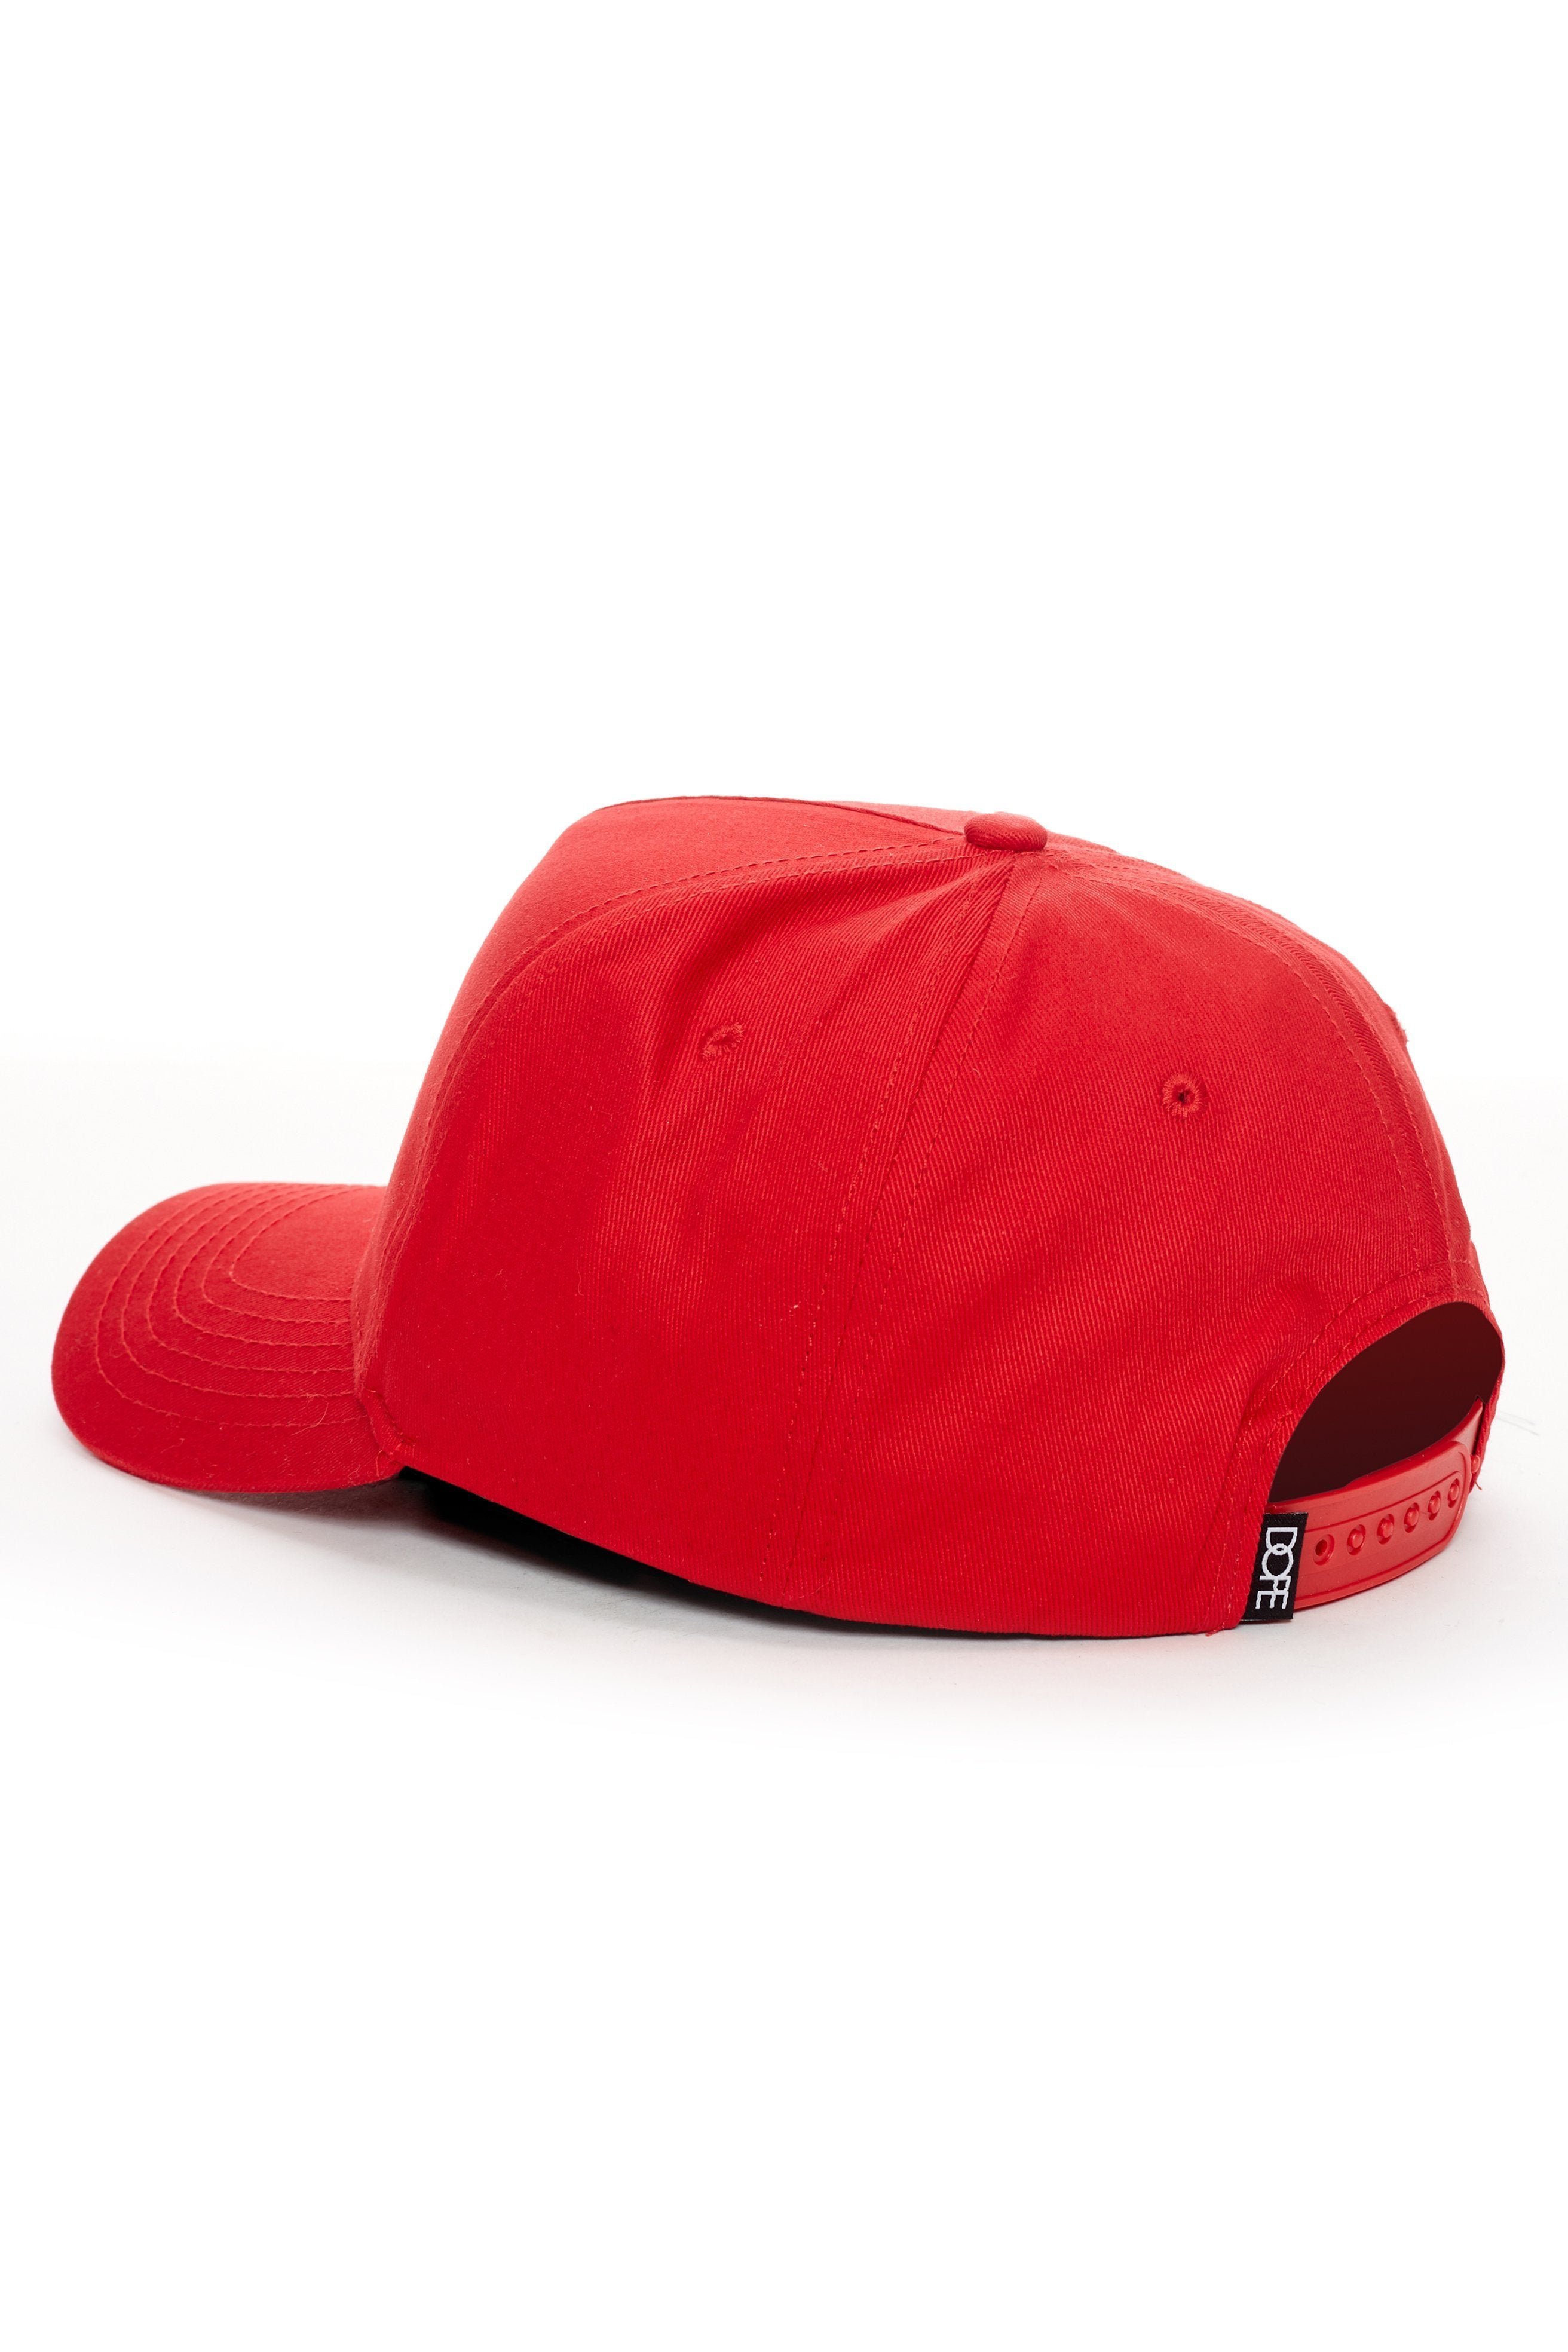 DOPE Dope Sport Snapback #Red